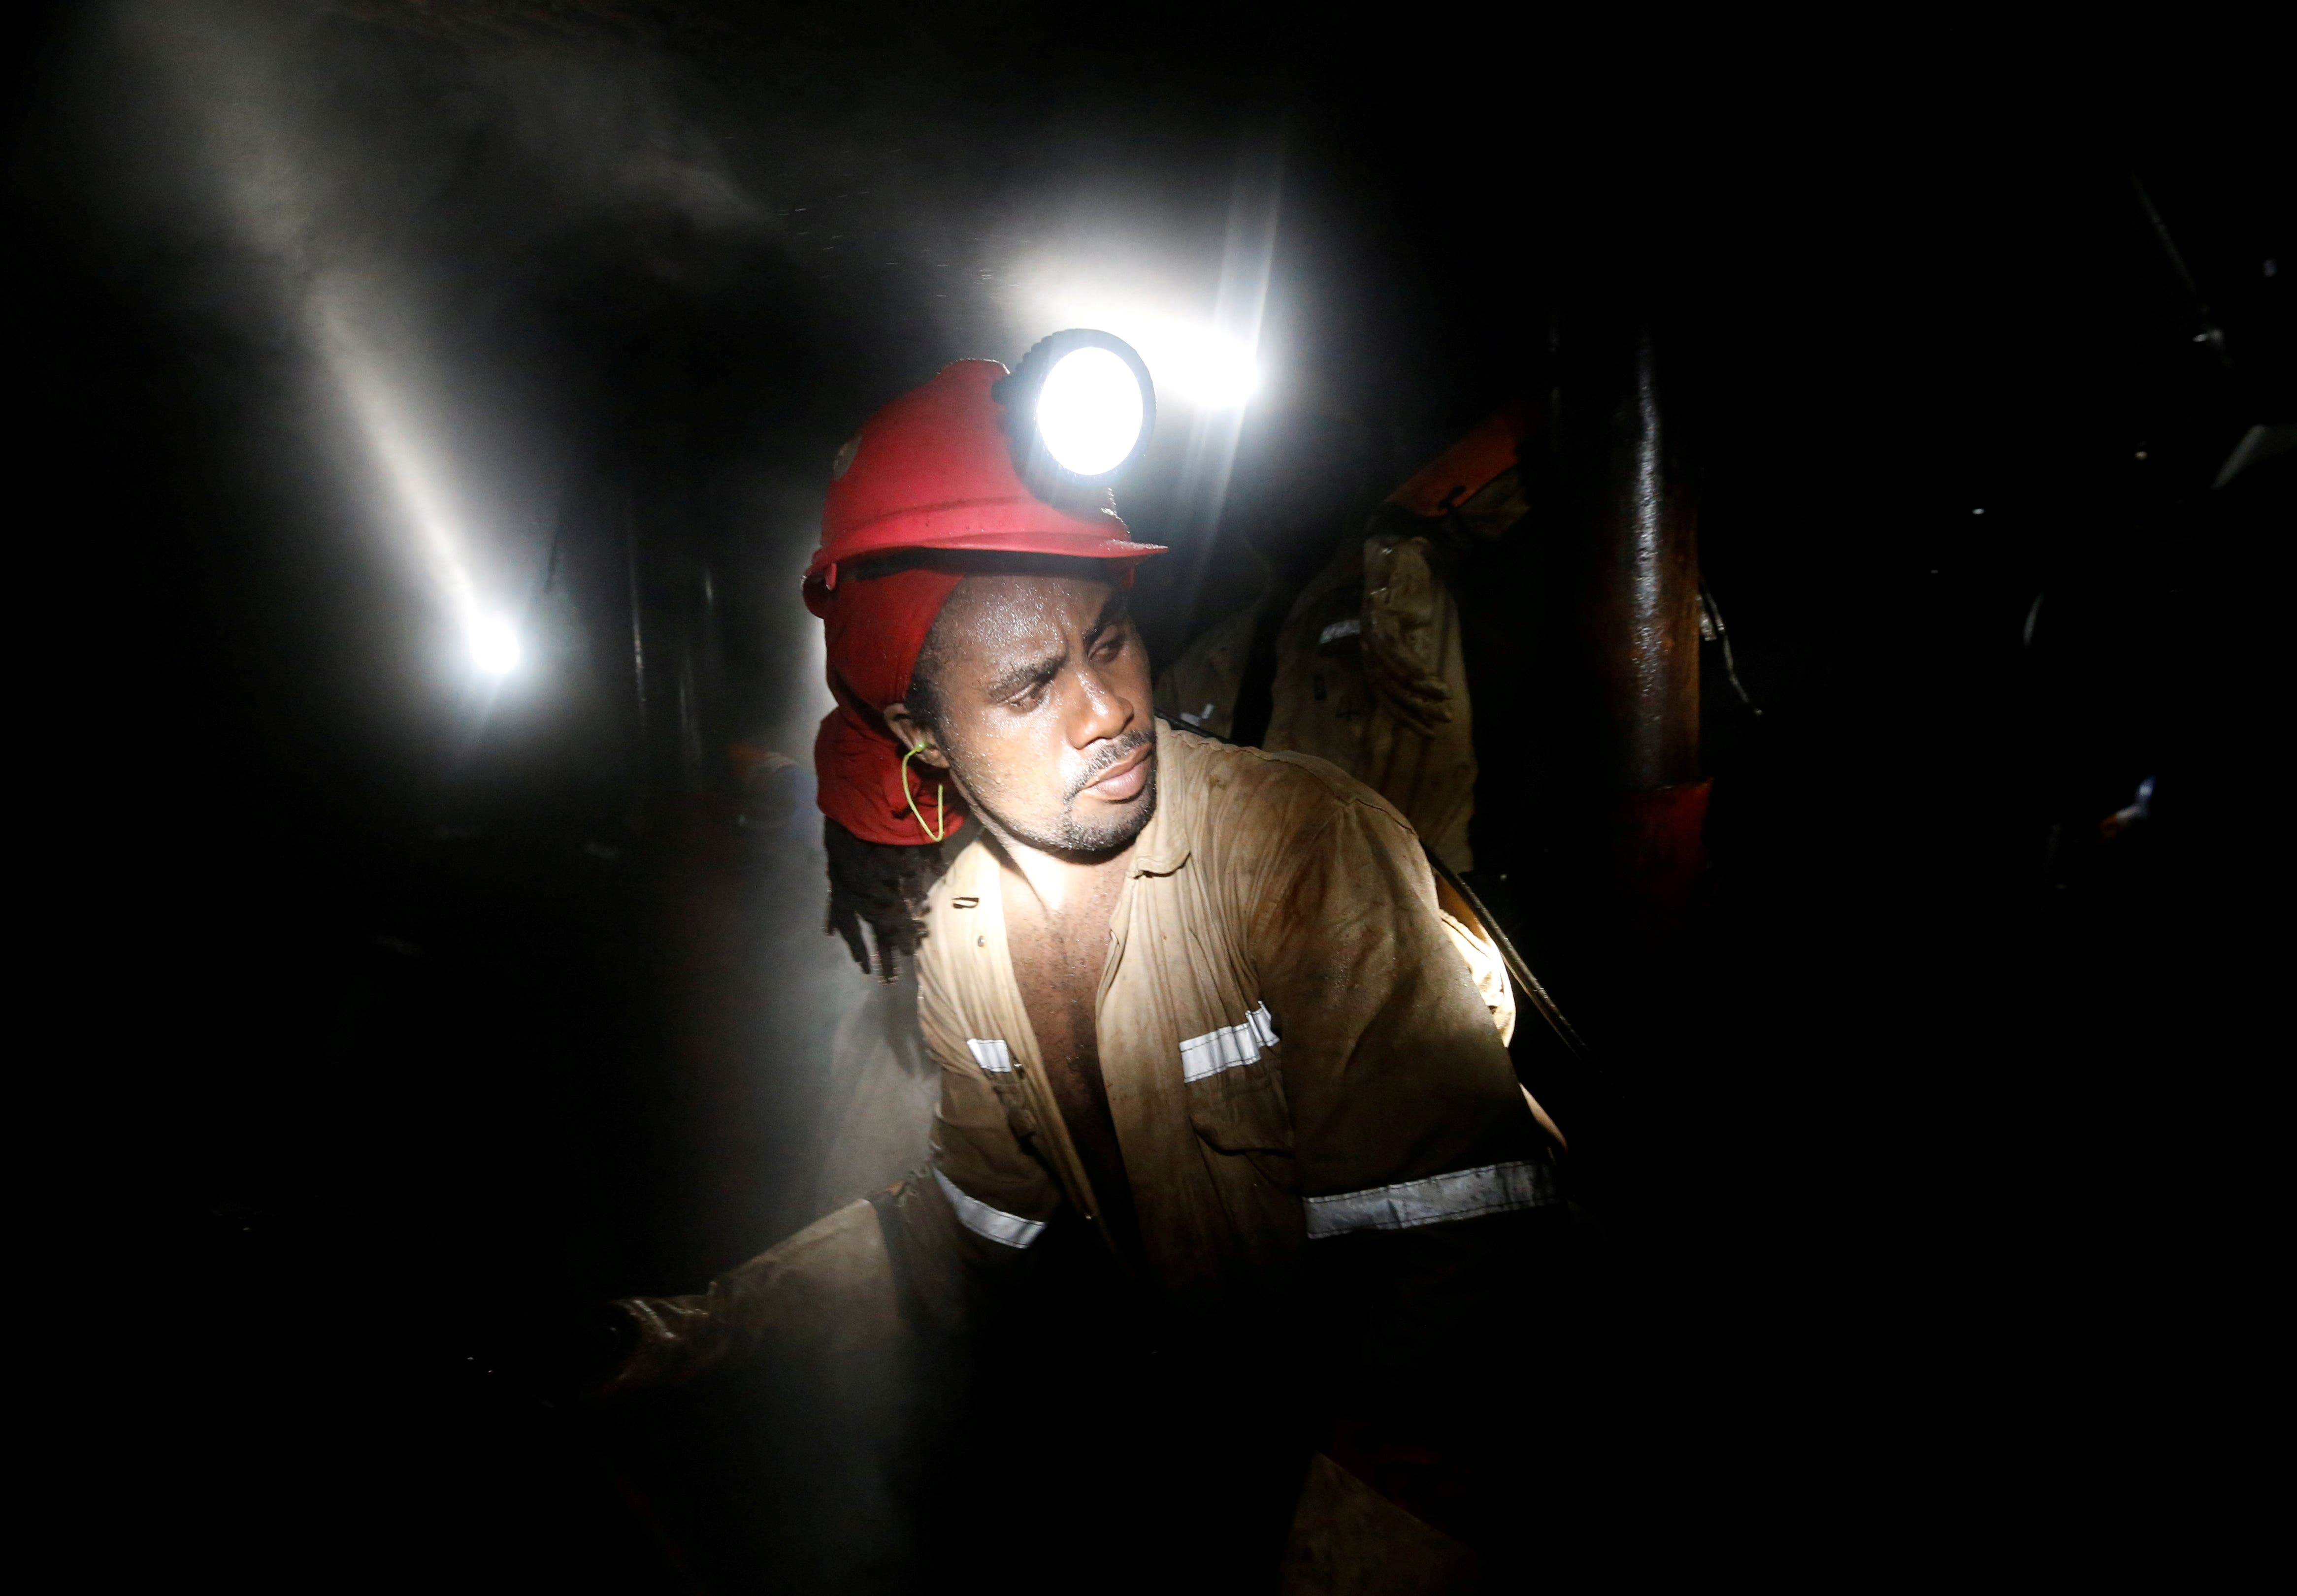 Eskom Price Hike to Cost South Africa 90,000 Mining Jobs - SAPeople